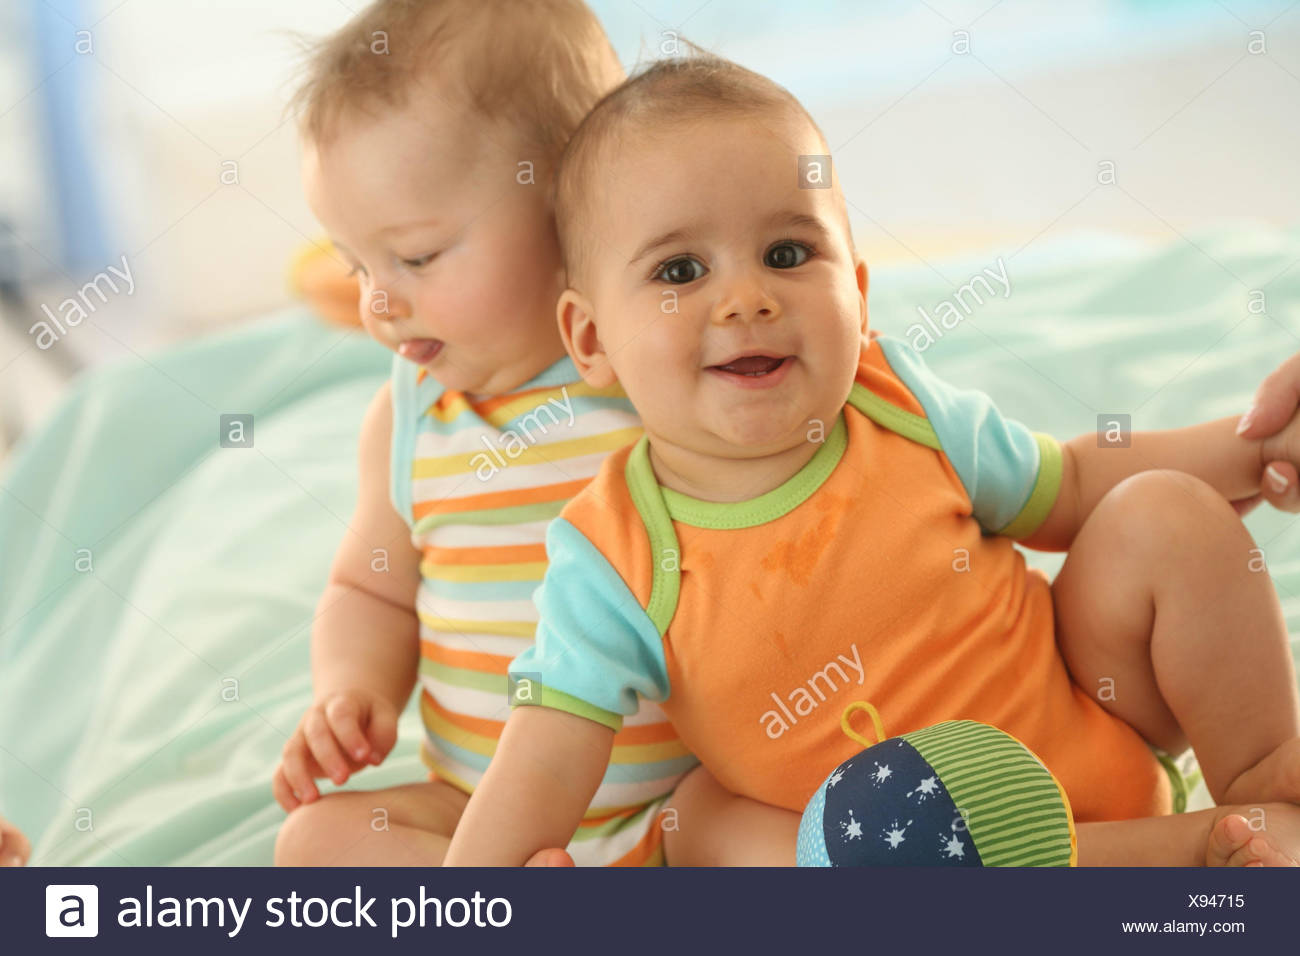 Babies, two, 7 months, smile, play friends, ball, dressed, discoveries, Indoor, boy, laugh, sit, play, toys, portrait, curled, - Stock Image